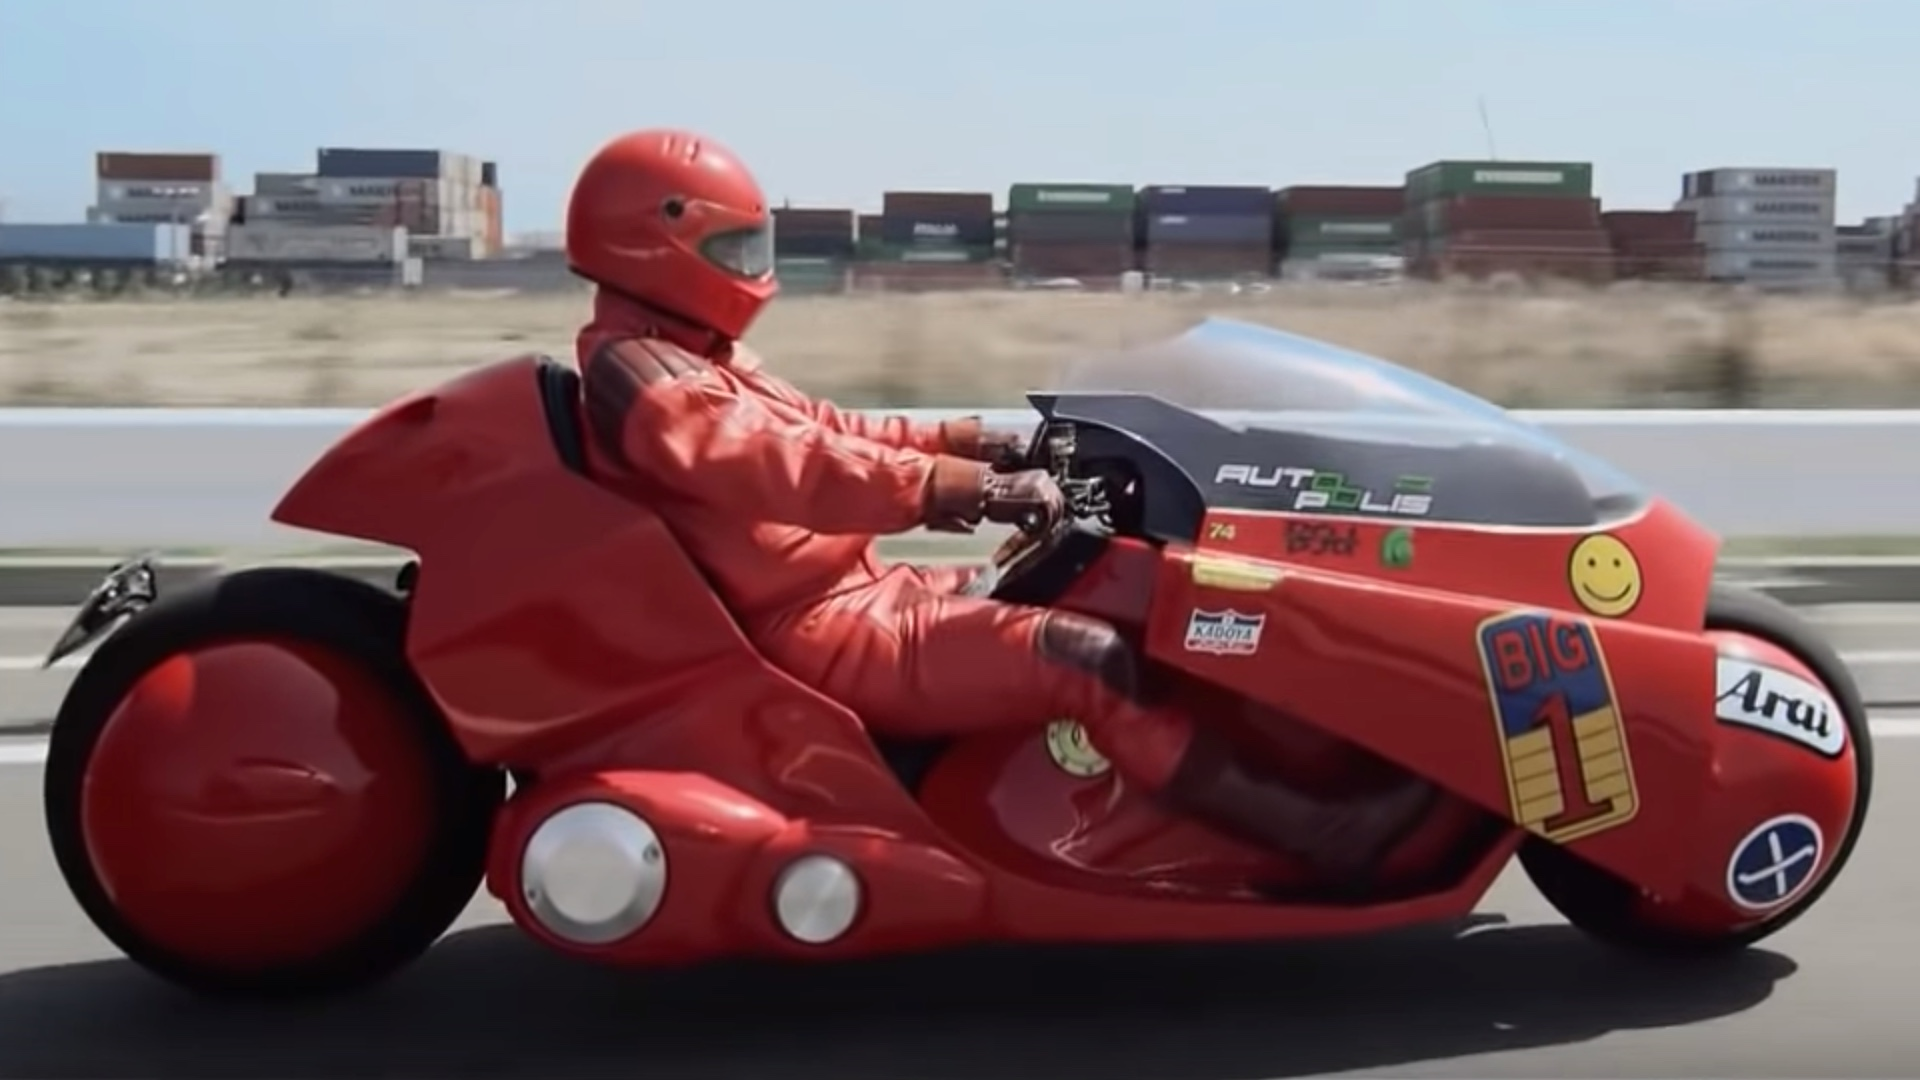 akira-fans-bring-the-films-iconic-motorcycle-to-life-watch-it-in-action-social.jpg